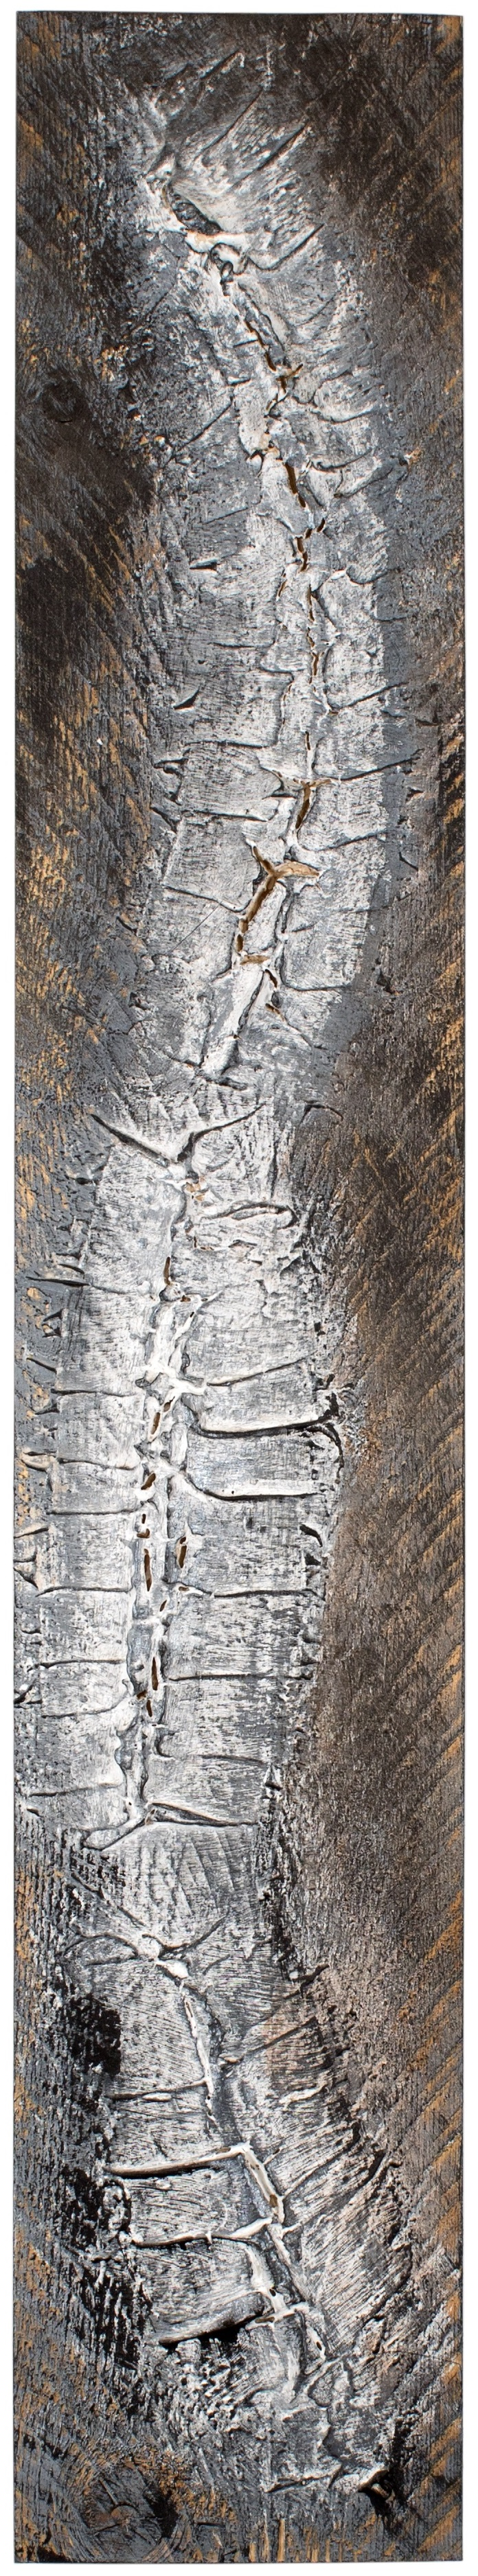 VERTEBRAE#5 - Plaster and acrylic on rough spruce board, 20x93cm - AVAILABLE